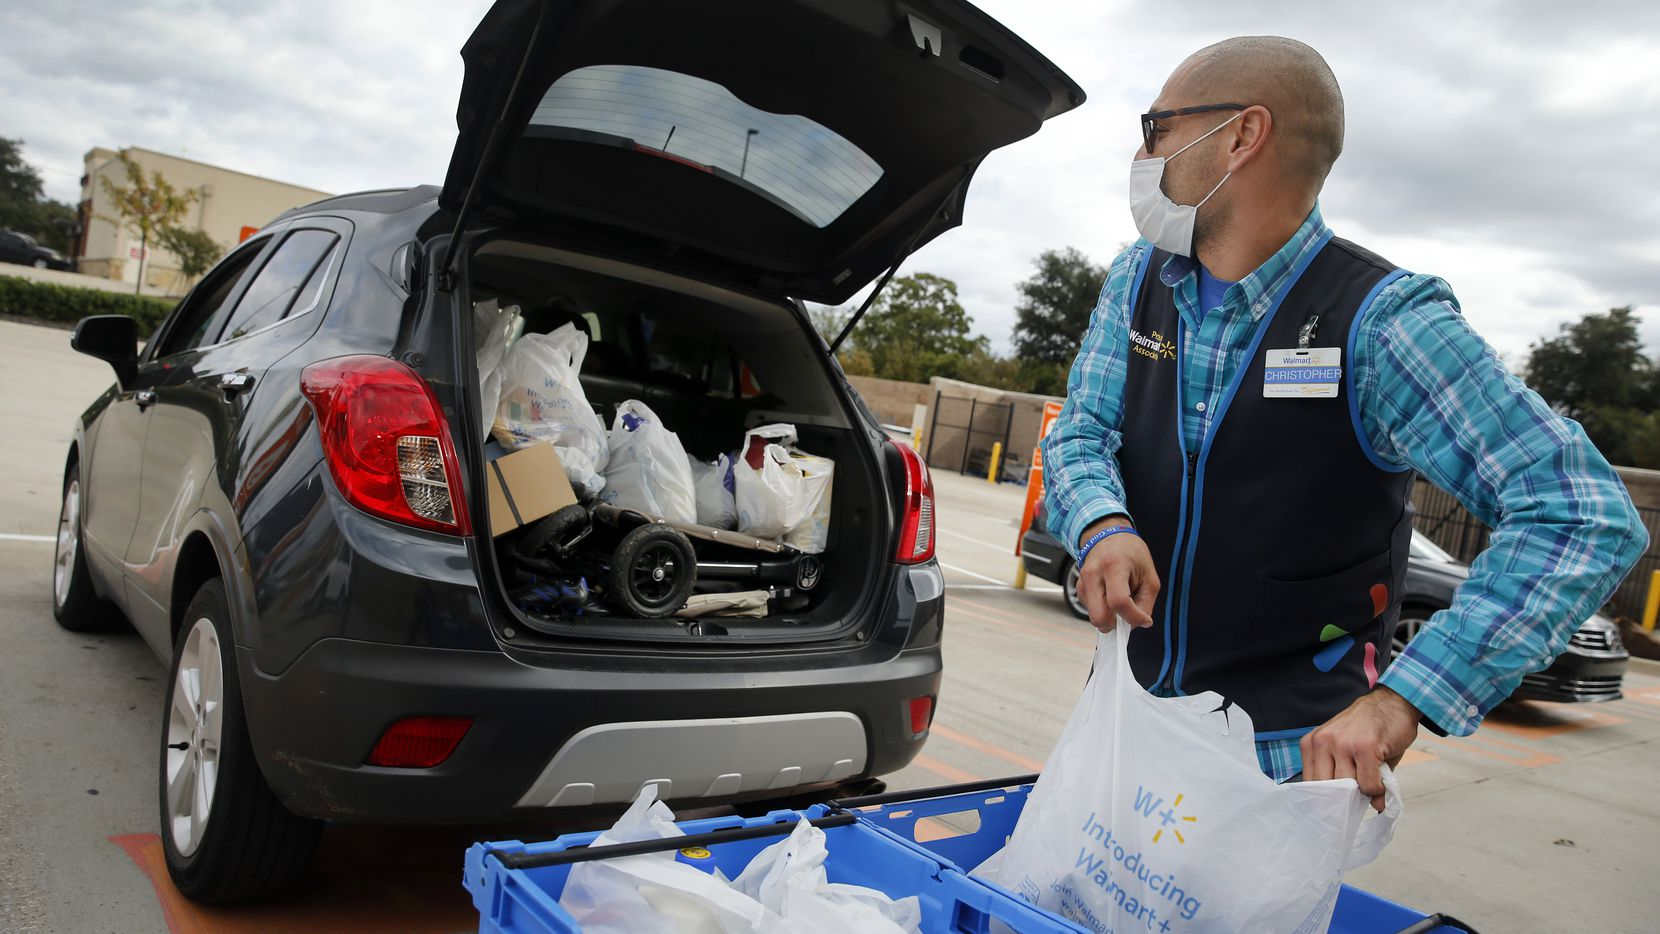 Online grocery pickup associate Christopher Juarez loads Maria Hernandez's SUV with groceries at a Walmart Supercenter in Dallas. As Dallas County sees an uptick in COVID-19 cases and related variants, some North Texas shoppers will likely turn to online grocery shopping.